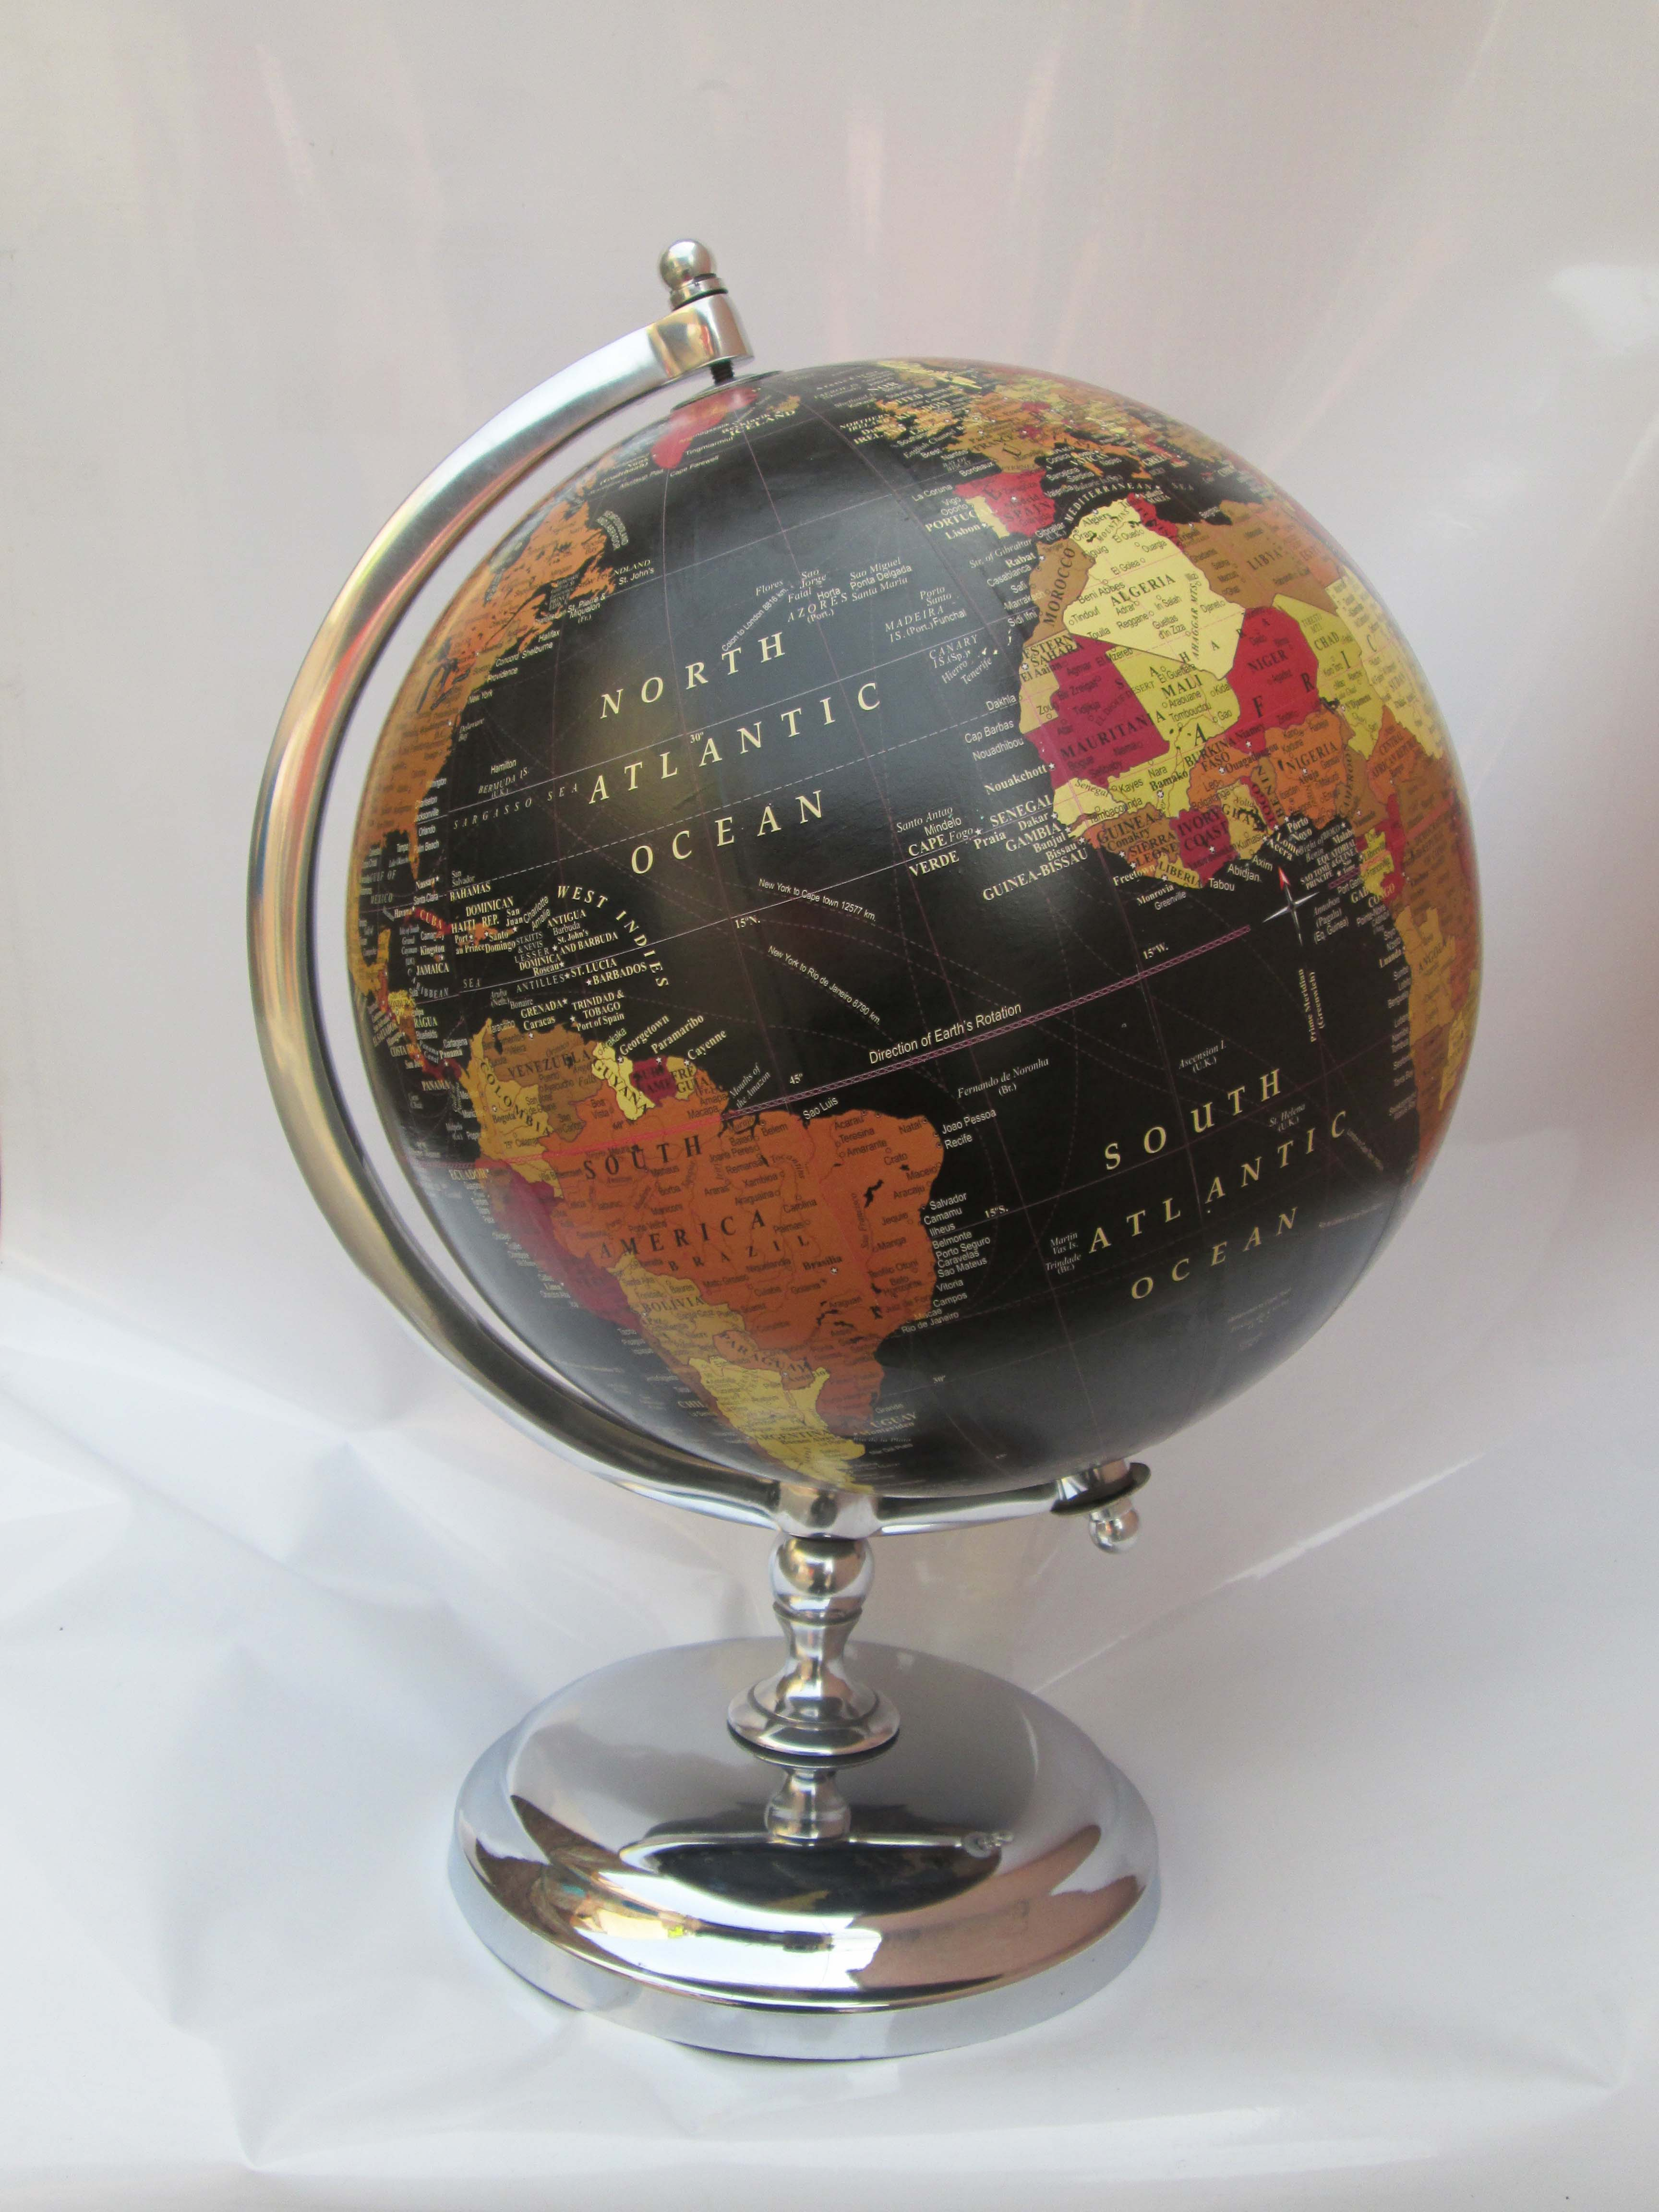 desk globe with worldwide sea route air route details